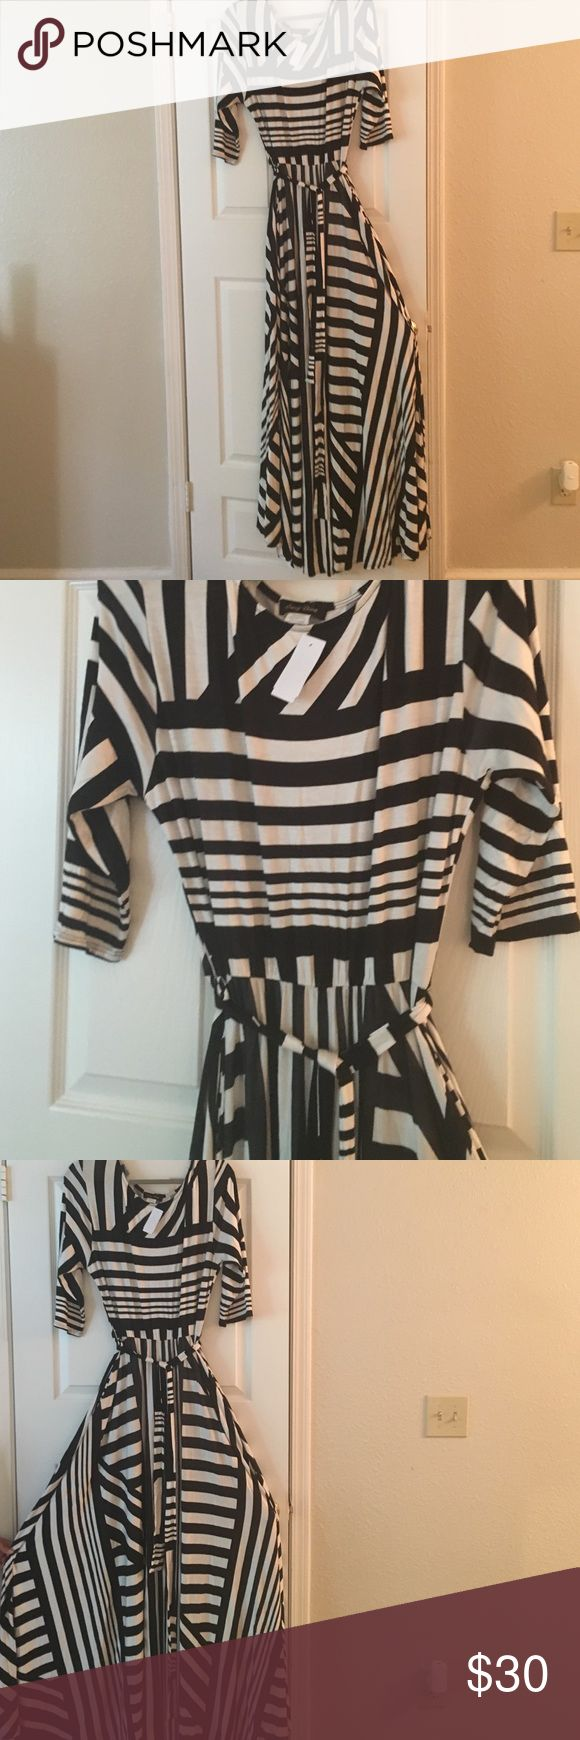 G Stage black and white striped flowy maxi dress Black and white striped maxi dress with elastic waist and matching belt. This is junior plus 3x but fits more like a 1x or 2x. gstage Dresses Maxi